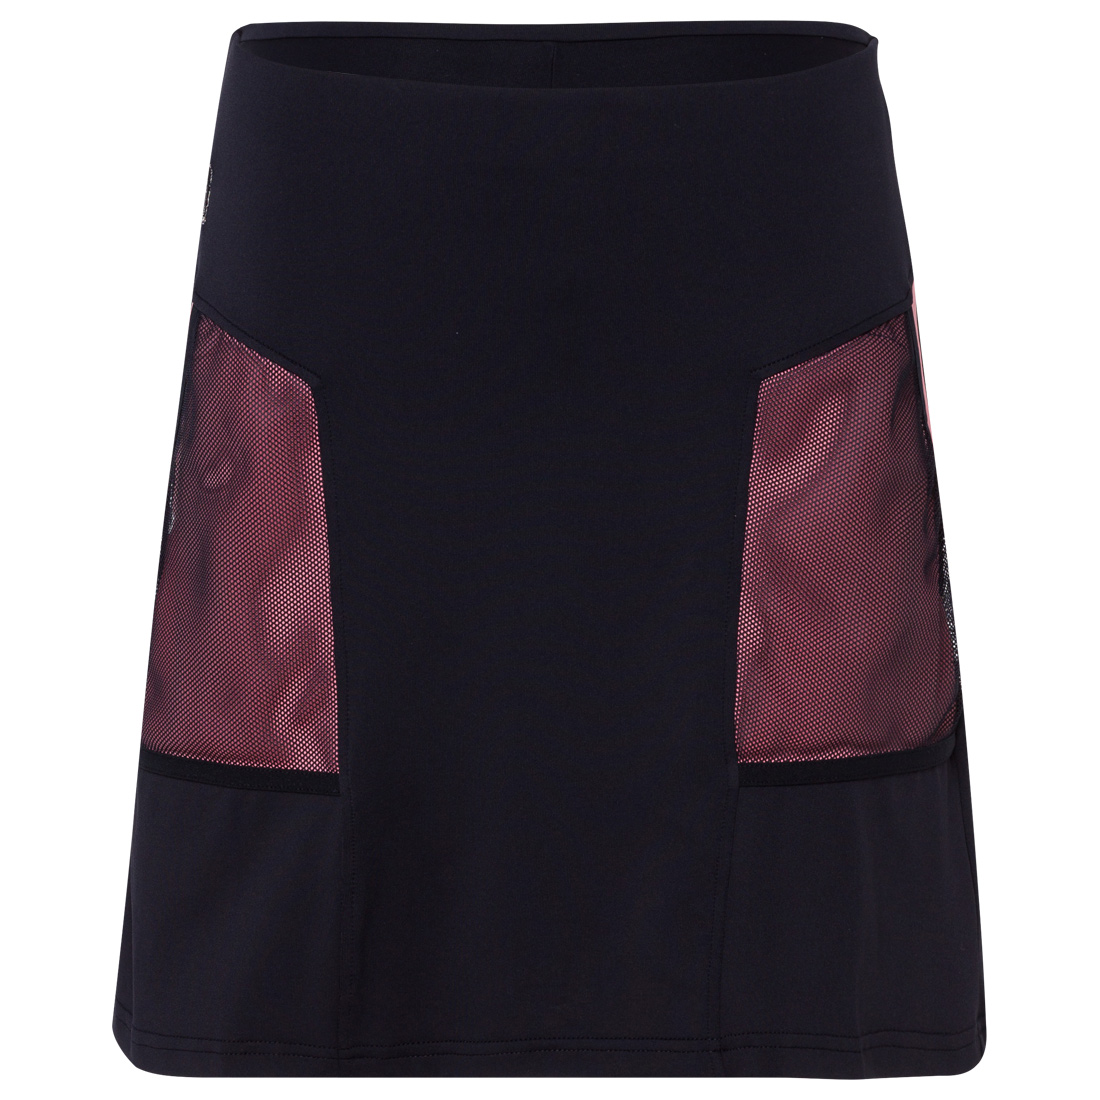 Ladies' functional golf skirt